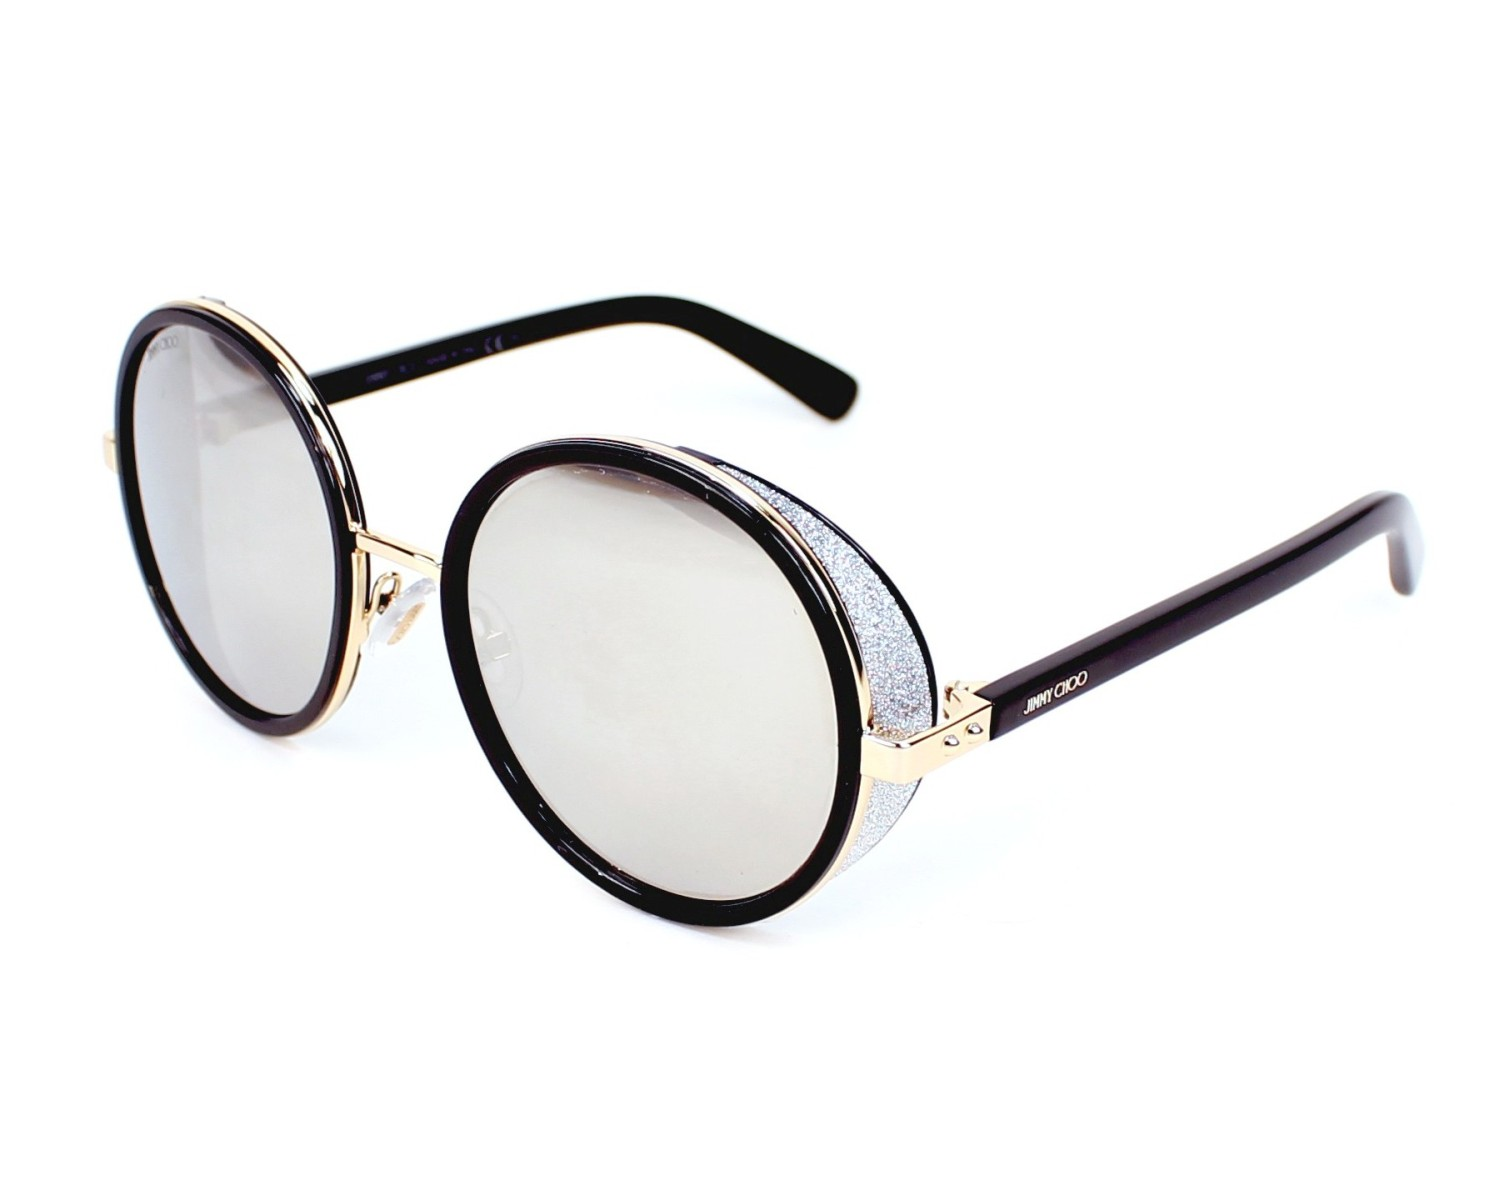 7fb09bb9e9b Sunglasses Jimmy Choo ANDIE-S J7Q M3 54-21 Black Gold profile view